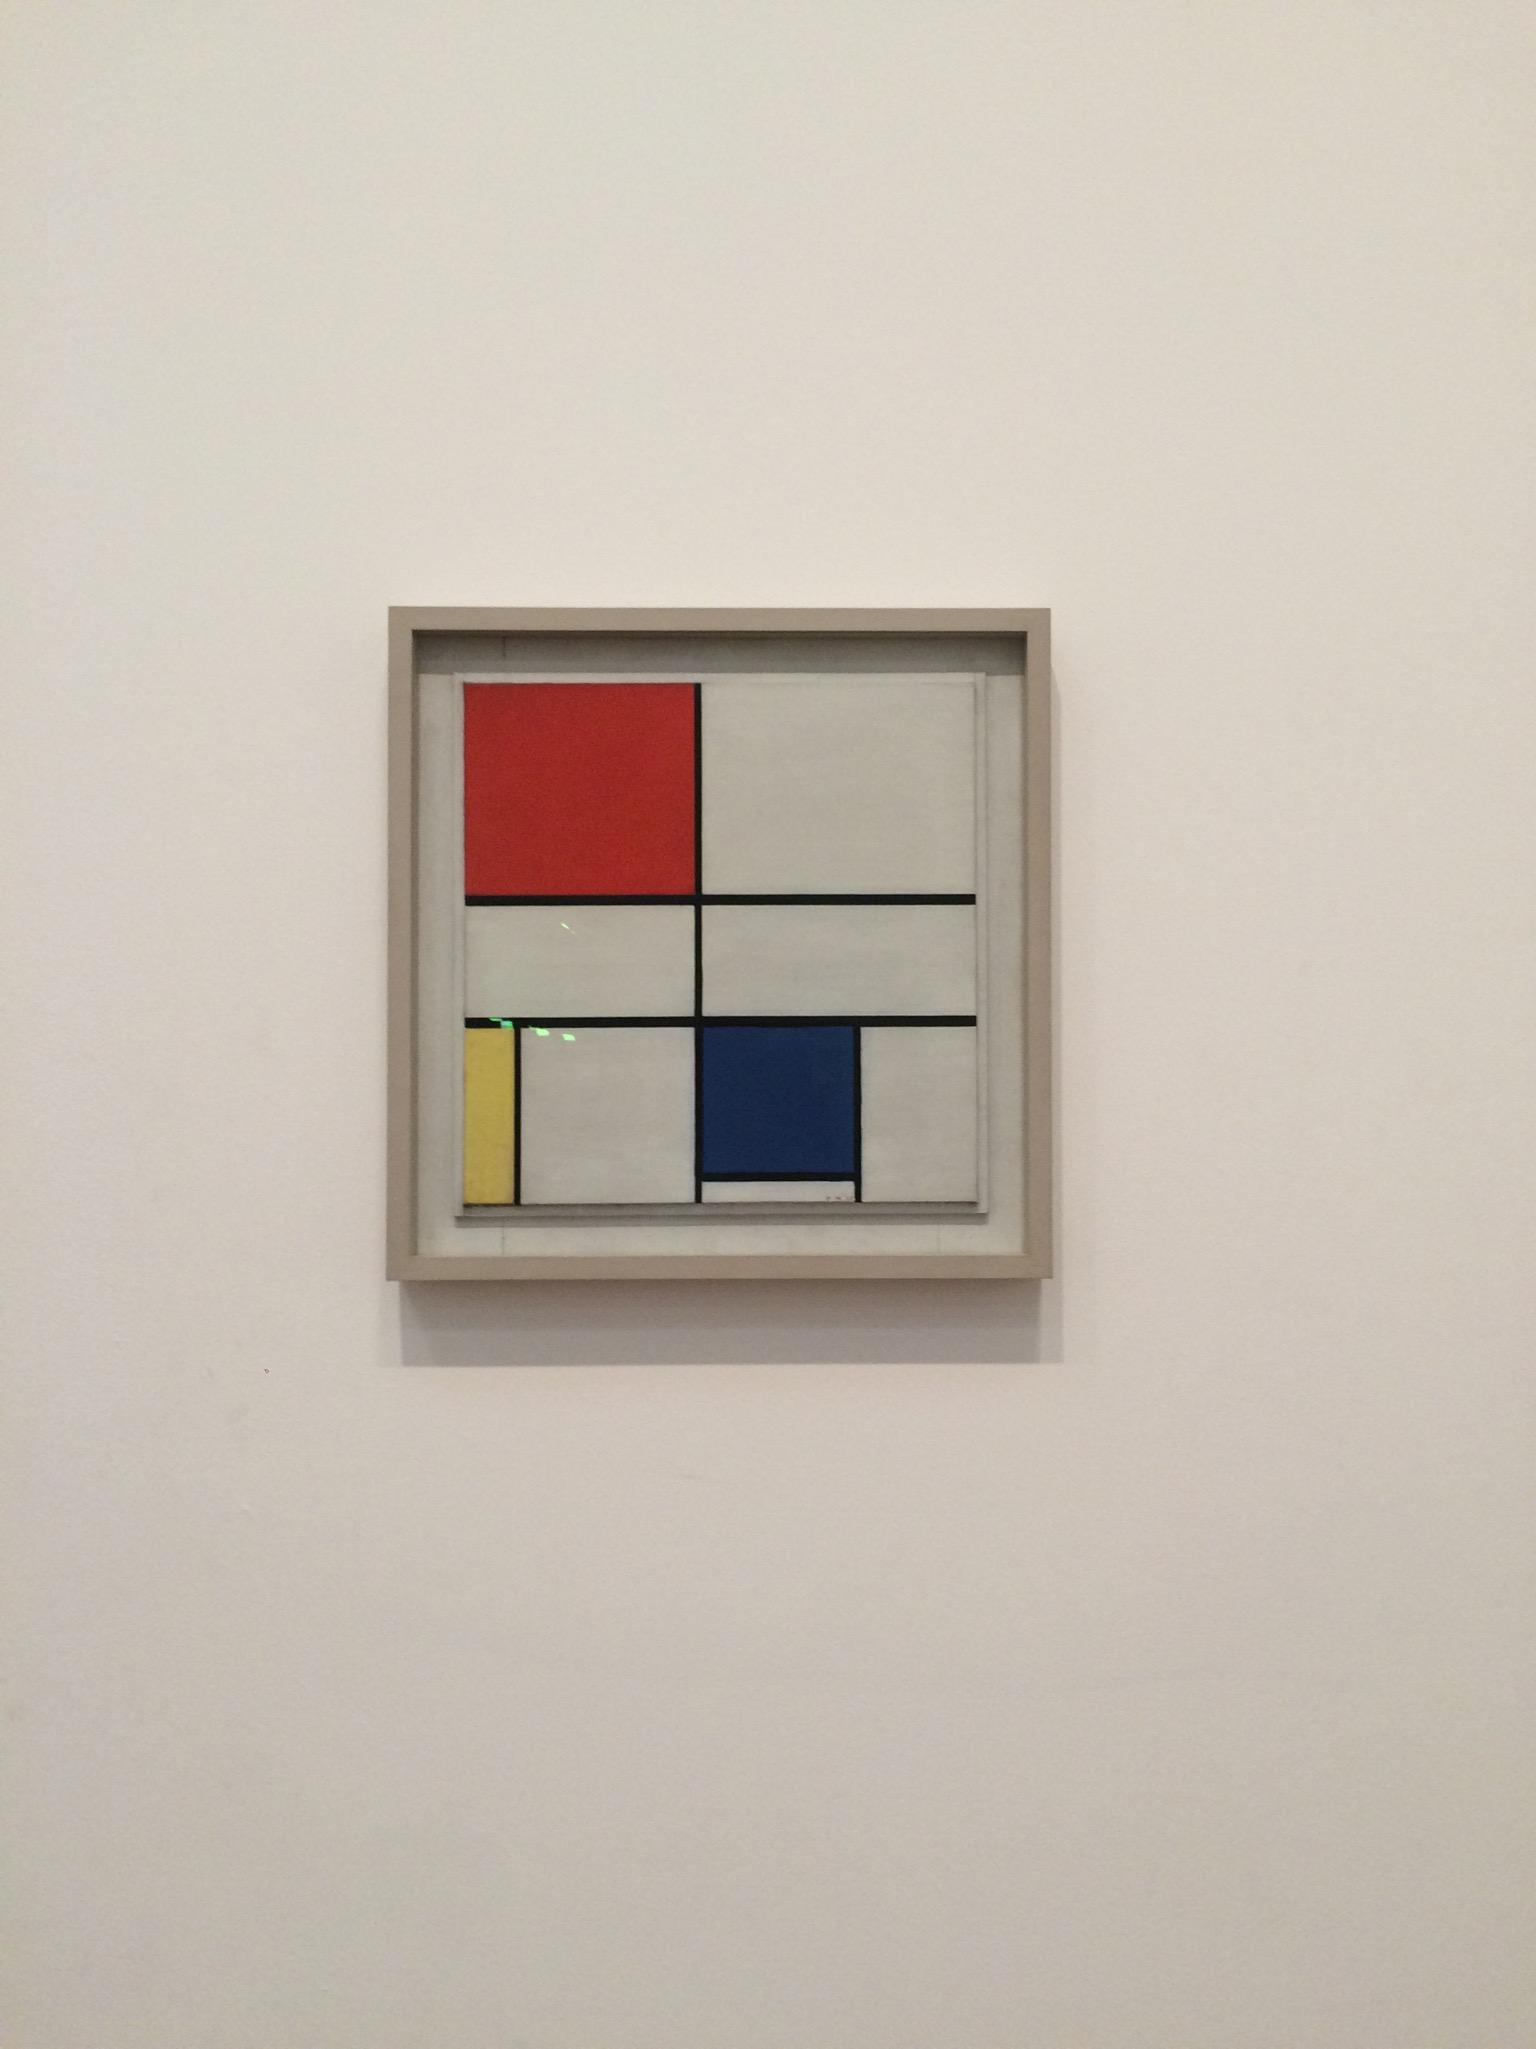 1935 Composition C (No.III) with red, yellow, and blue, by Piet Monrian, in the Tate Modern, London. Photo credit: Casey Martinez